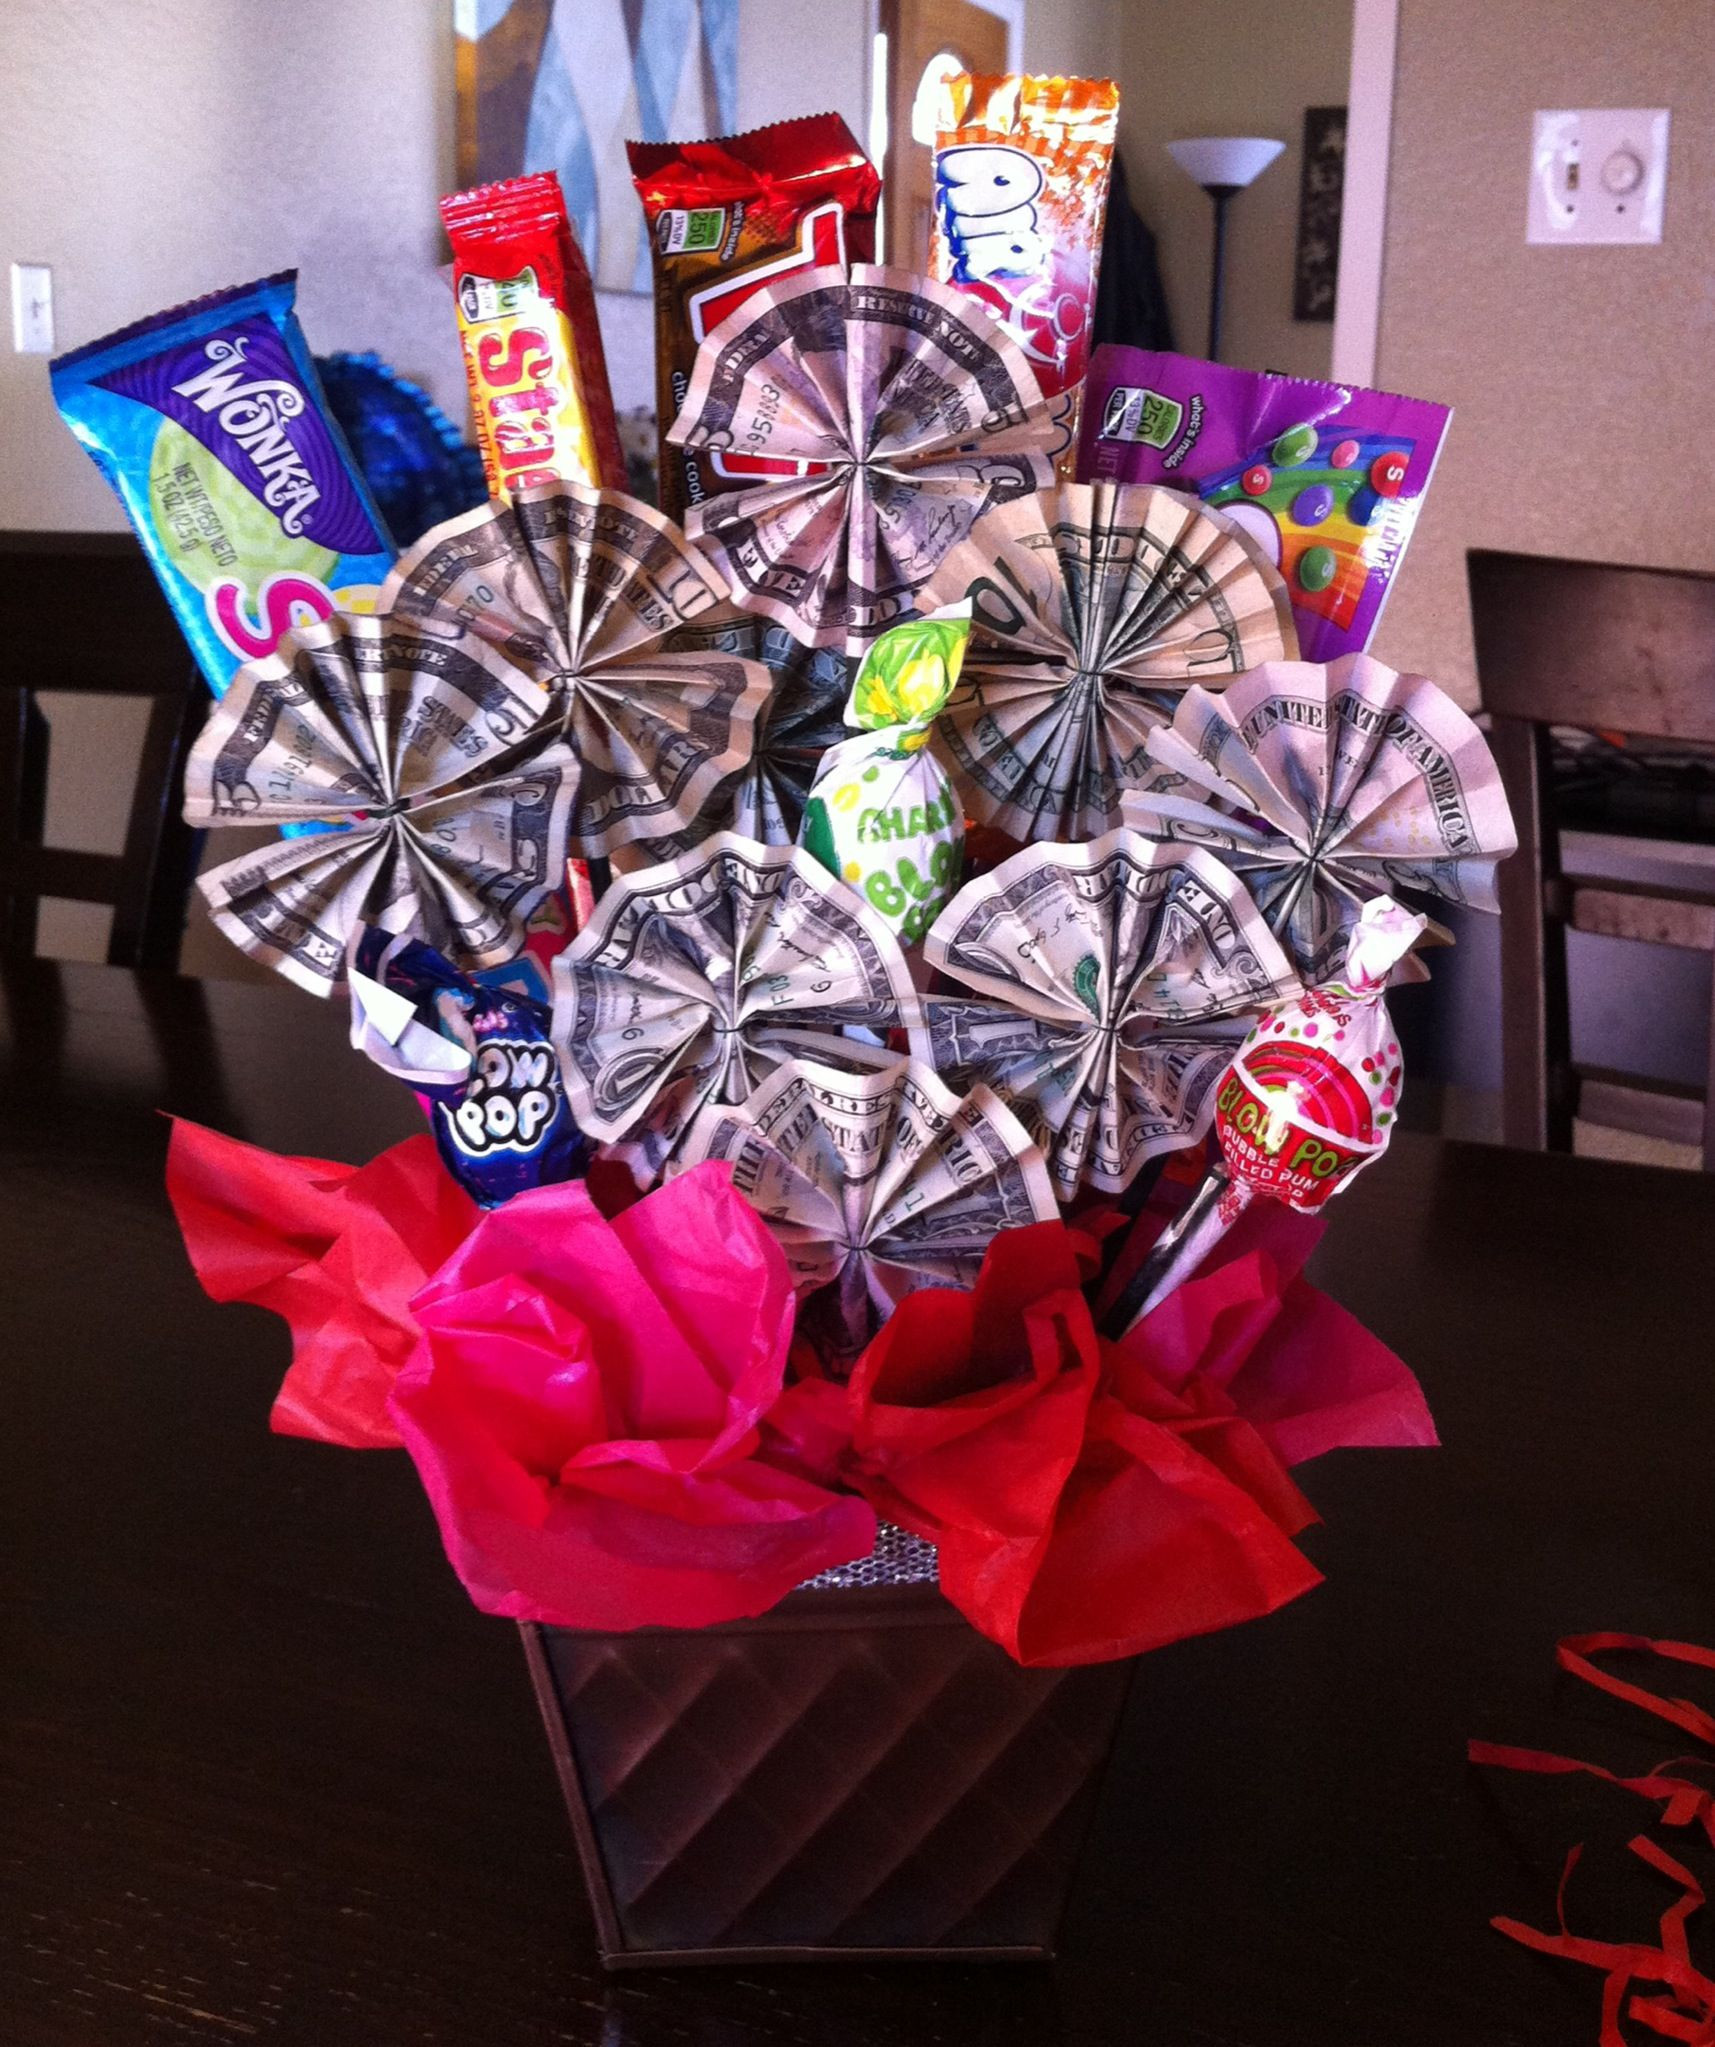 5Th Grade Graduation Gift Ideas For Boys  Money candy bouquet I made this for my niece as a t